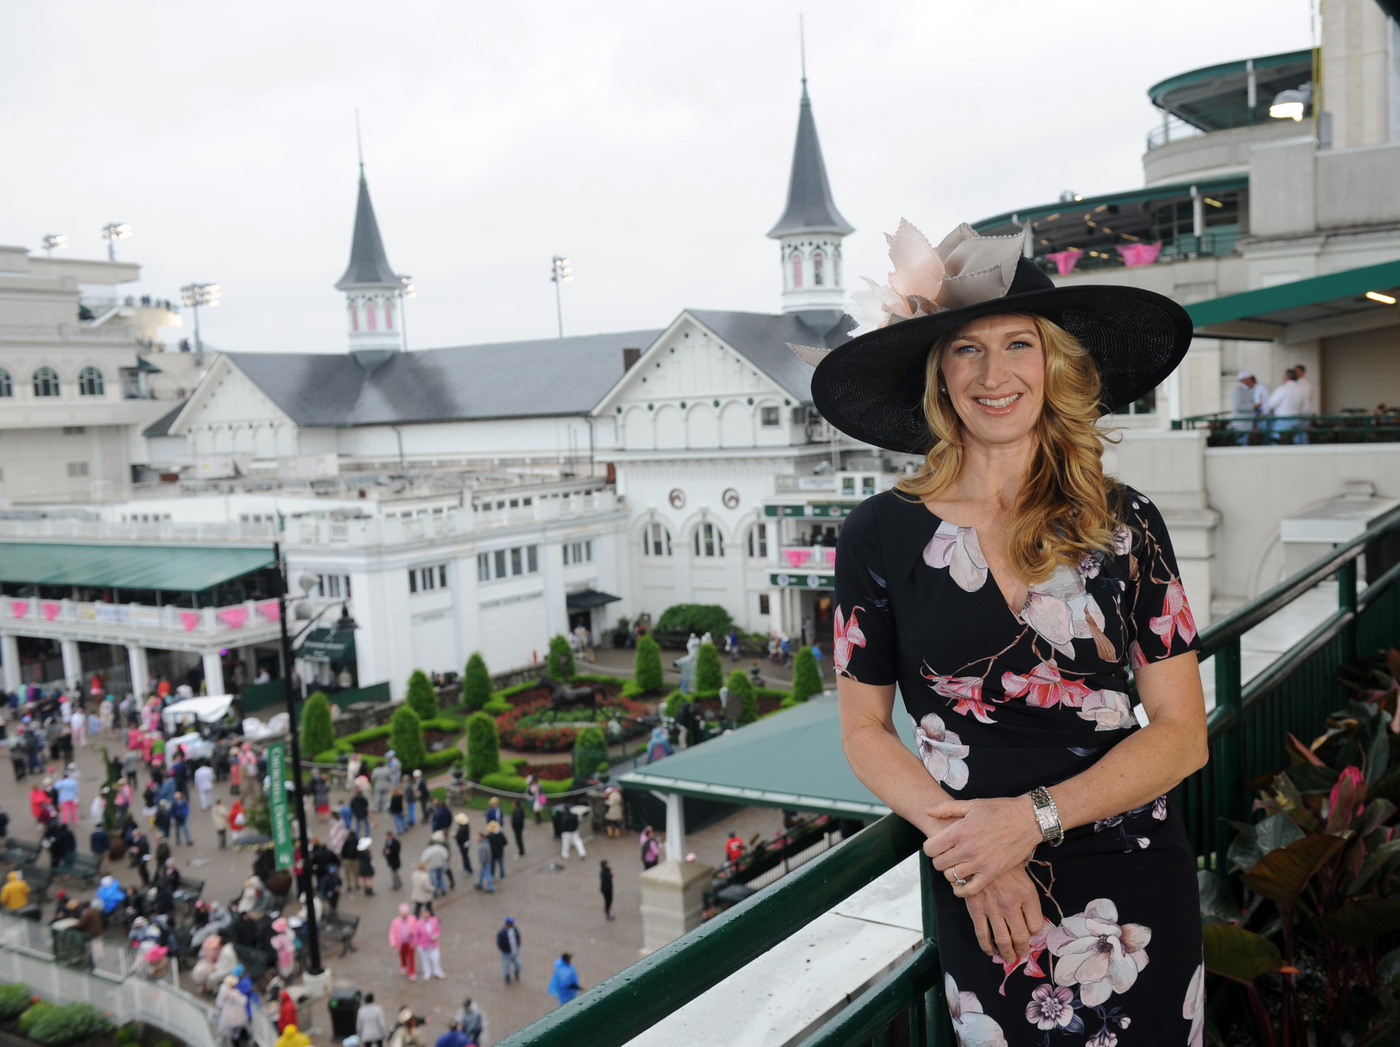 Longines Flat Racing Event: Elegance celebrated in grand style at the 143rd Longines Kentucky Oaks 1